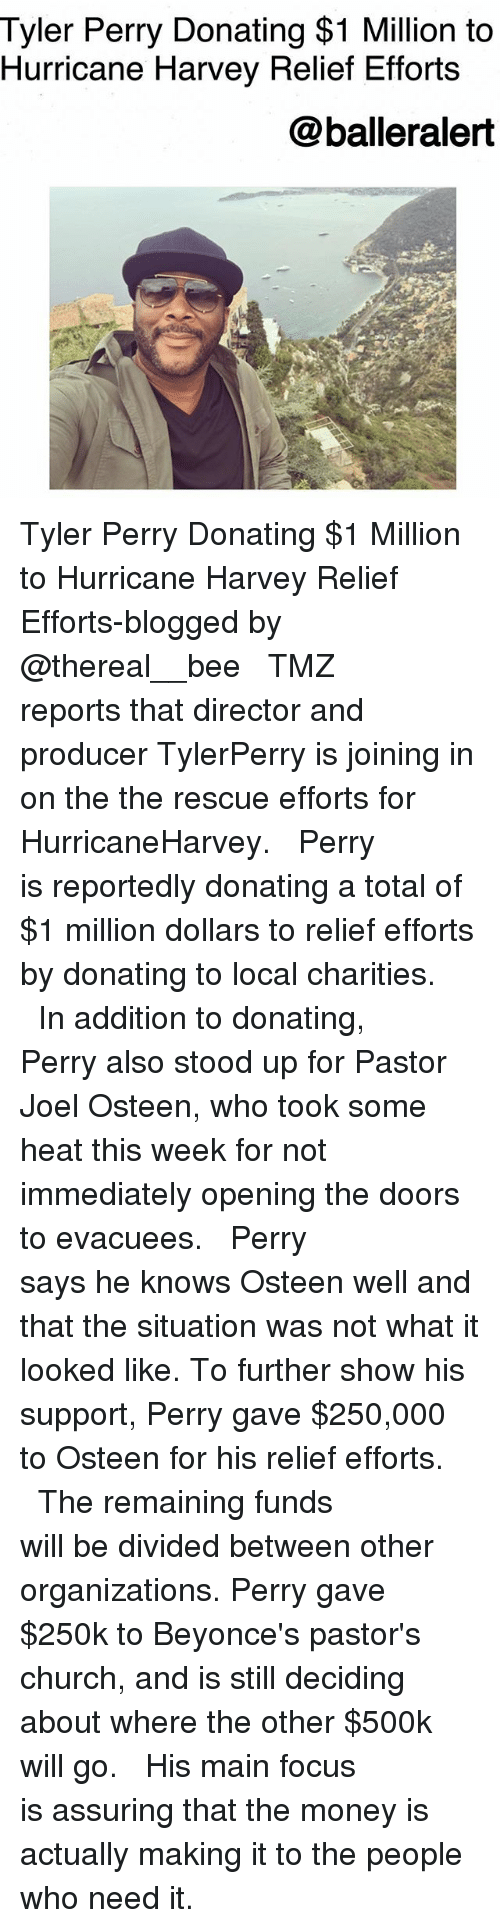 Tyler Perry: Tyler Perry Donating $1 Million to  Hurricane Harvey Relief Efforts  @balleralert Tyler Perry Donating $1 Million to Hurricane Harvey Relief Efforts-blogged by @thereal__bee ⠀⠀⠀⠀⠀⠀⠀⠀⠀ ⠀⠀ TMZ reports that director and producer TylerPerry is joining in on the the rescue efforts for HurricaneHarvey. ⠀⠀⠀⠀⠀⠀⠀⠀⠀ ⠀⠀ Perry is reportedly donating a total of $1 million dollars to relief efforts by donating to local charities. ⠀⠀⠀⠀⠀⠀⠀⠀⠀ ⠀⠀ In addition to donating, Perry also stood up for Pastor Joel Osteen, who took some heat this week for not immediately opening the doors to evacuees. ⠀⠀⠀⠀⠀⠀⠀⠀⠀ ⠀⠀ Perry says he knows Osteen well and that the situation was not what it looked like. To further show his support, Perry gave $250,000 to Osteen for his relief efforts. ⠀⠀⠀⠀⠀⠀⠀⠀⠀ ⠀⠀ The remaining funds will be divided between other organizations. Perry gave $250k to Beyonce's pastor's church, and is still deciding about where the other $500k will go. ⠀⠀⠀⠀⠀⠀⠀⠀⠀ ⠀⠀ His main focus is assuring that the money is actually making it to the people who need it.